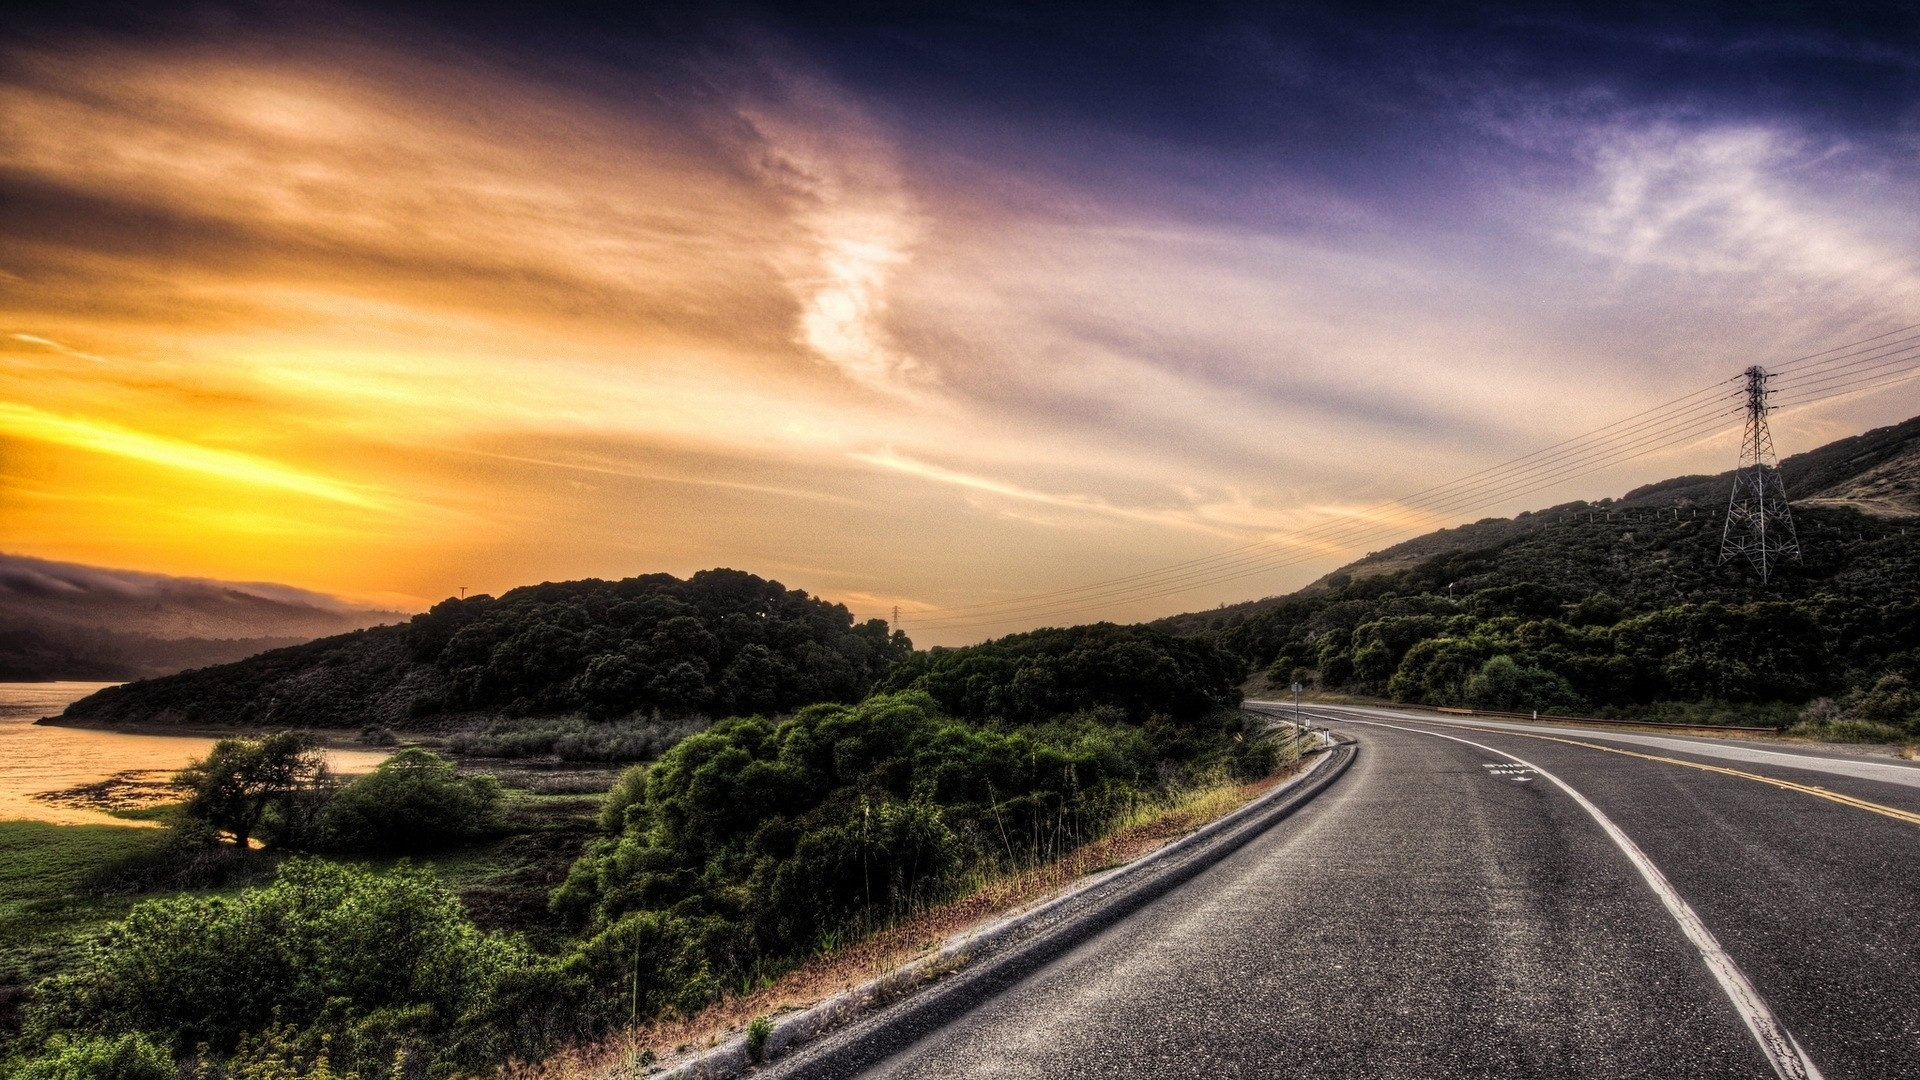 1920x1080 Road Scenic Pole River Sunset Desktop PC And Mac Wallpaper